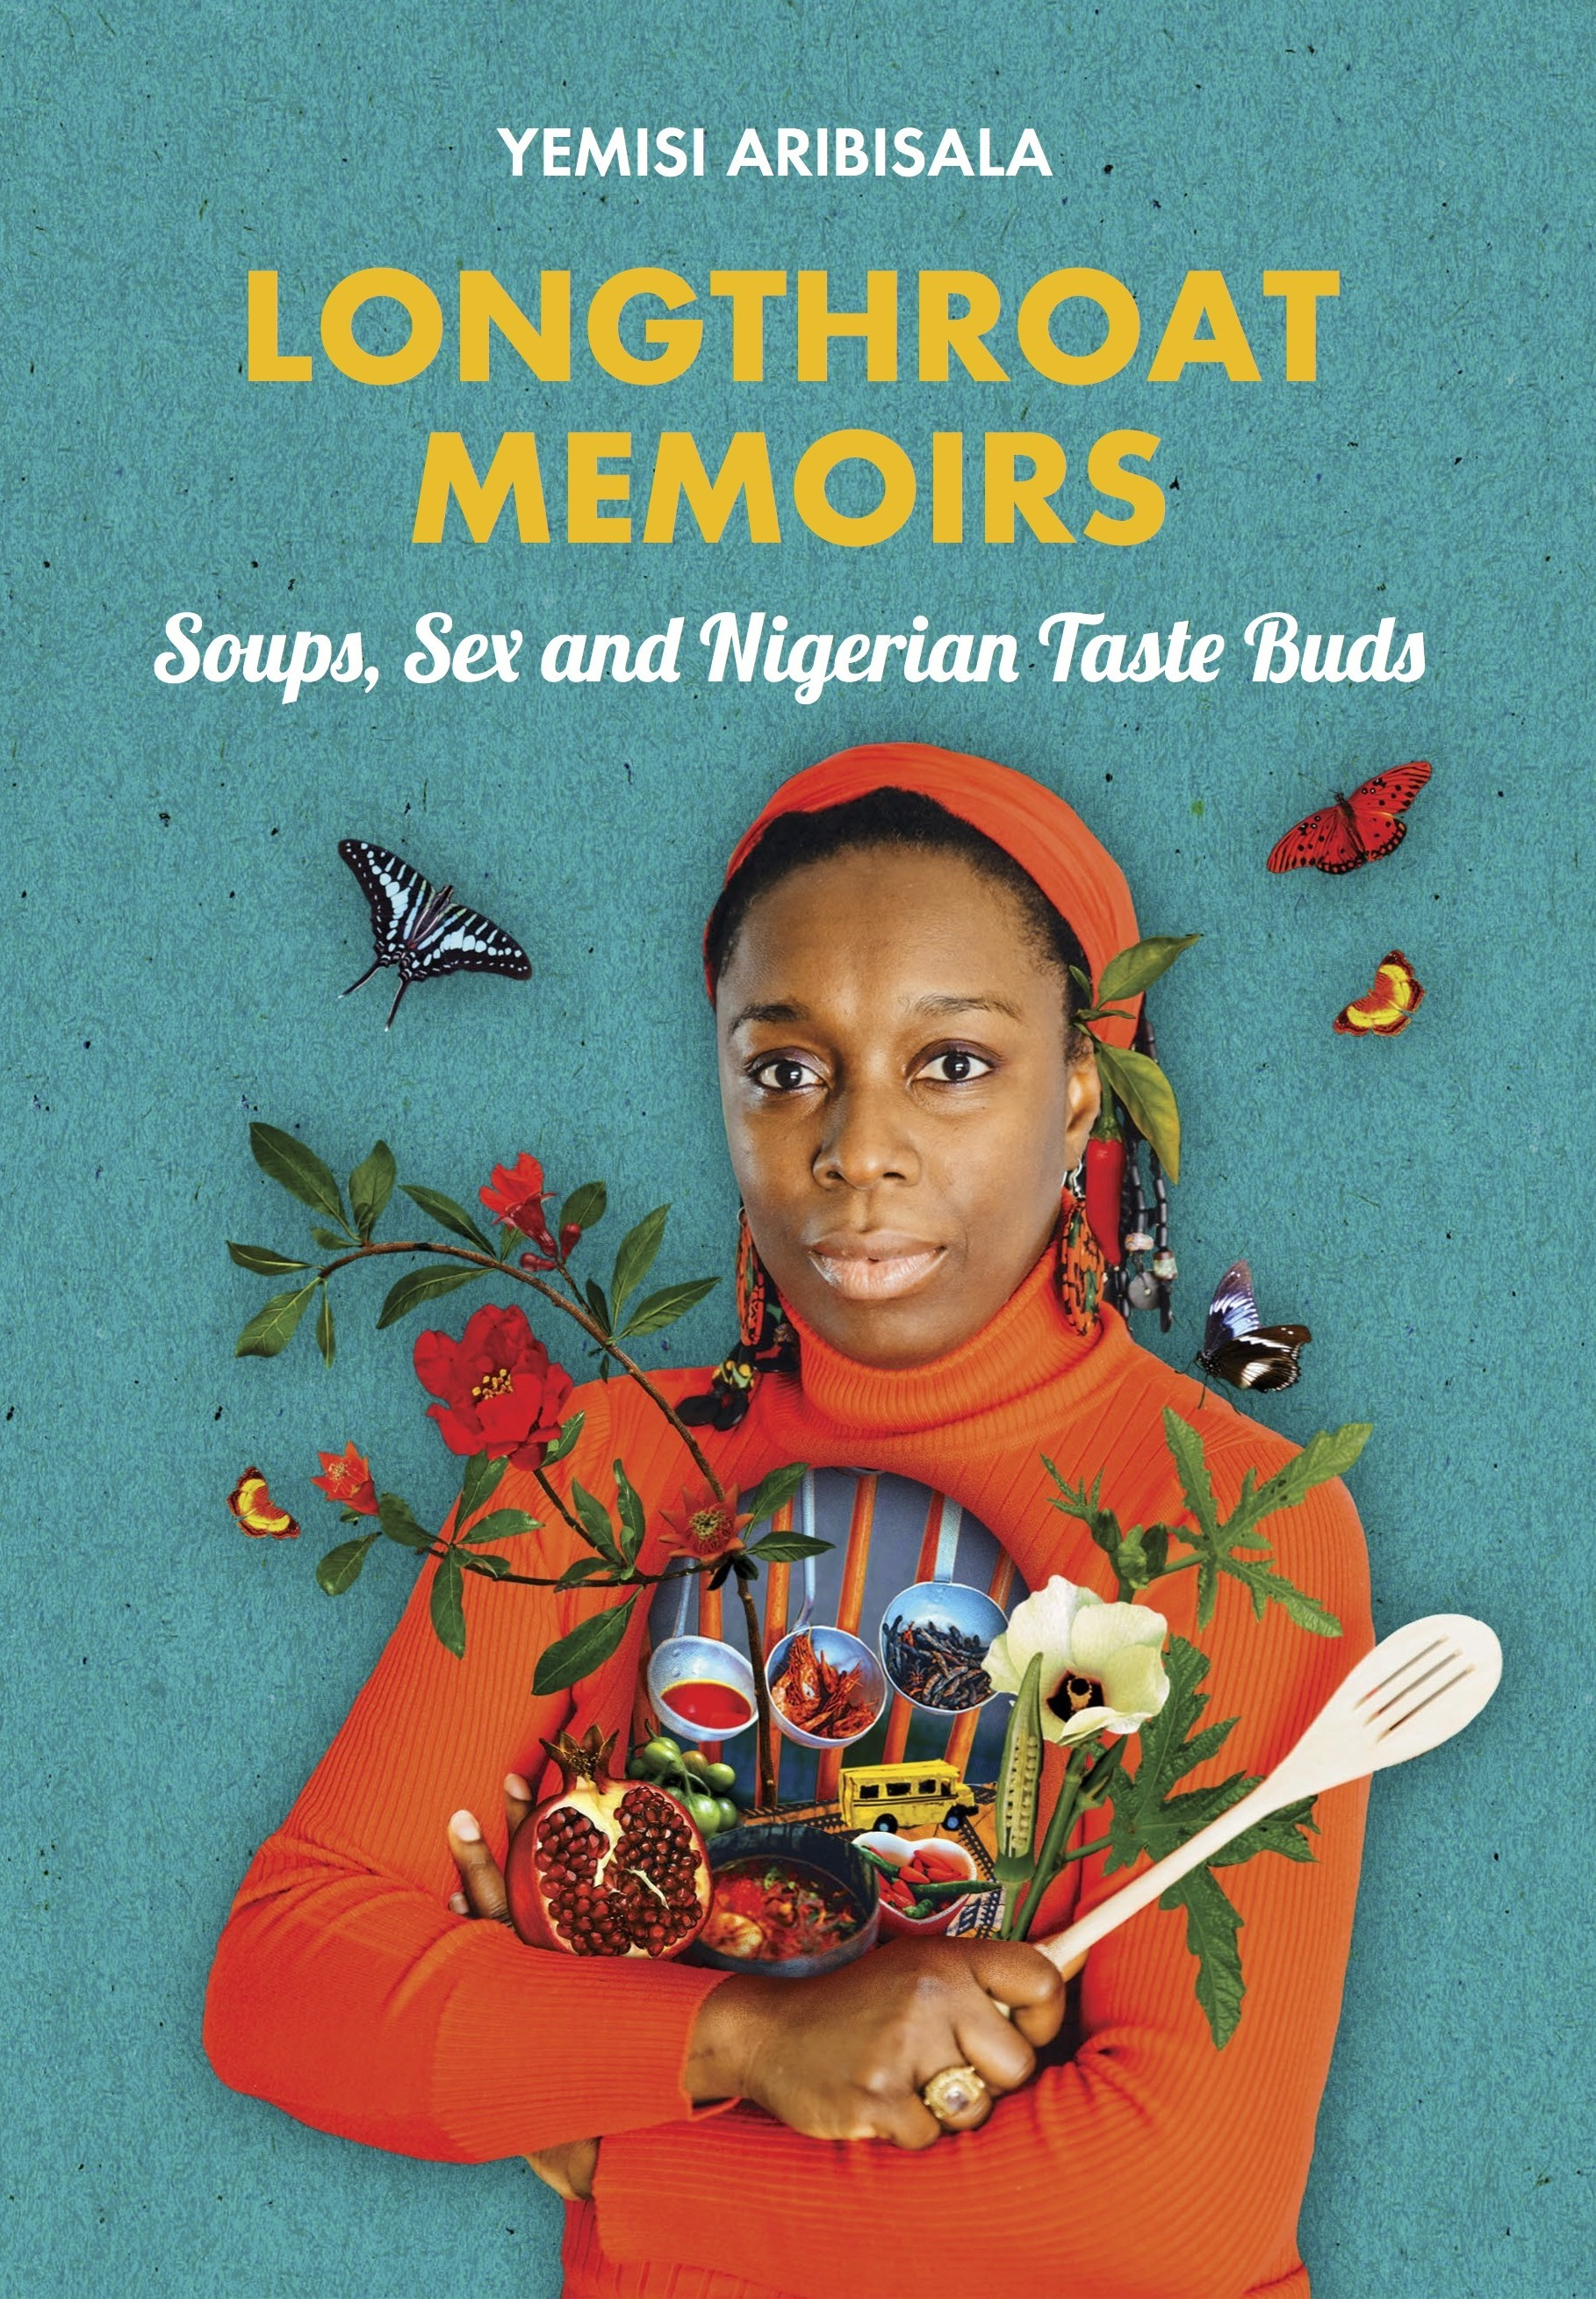 Longthroat Memoirs Soups, Sex and Nigerian Taste Buds